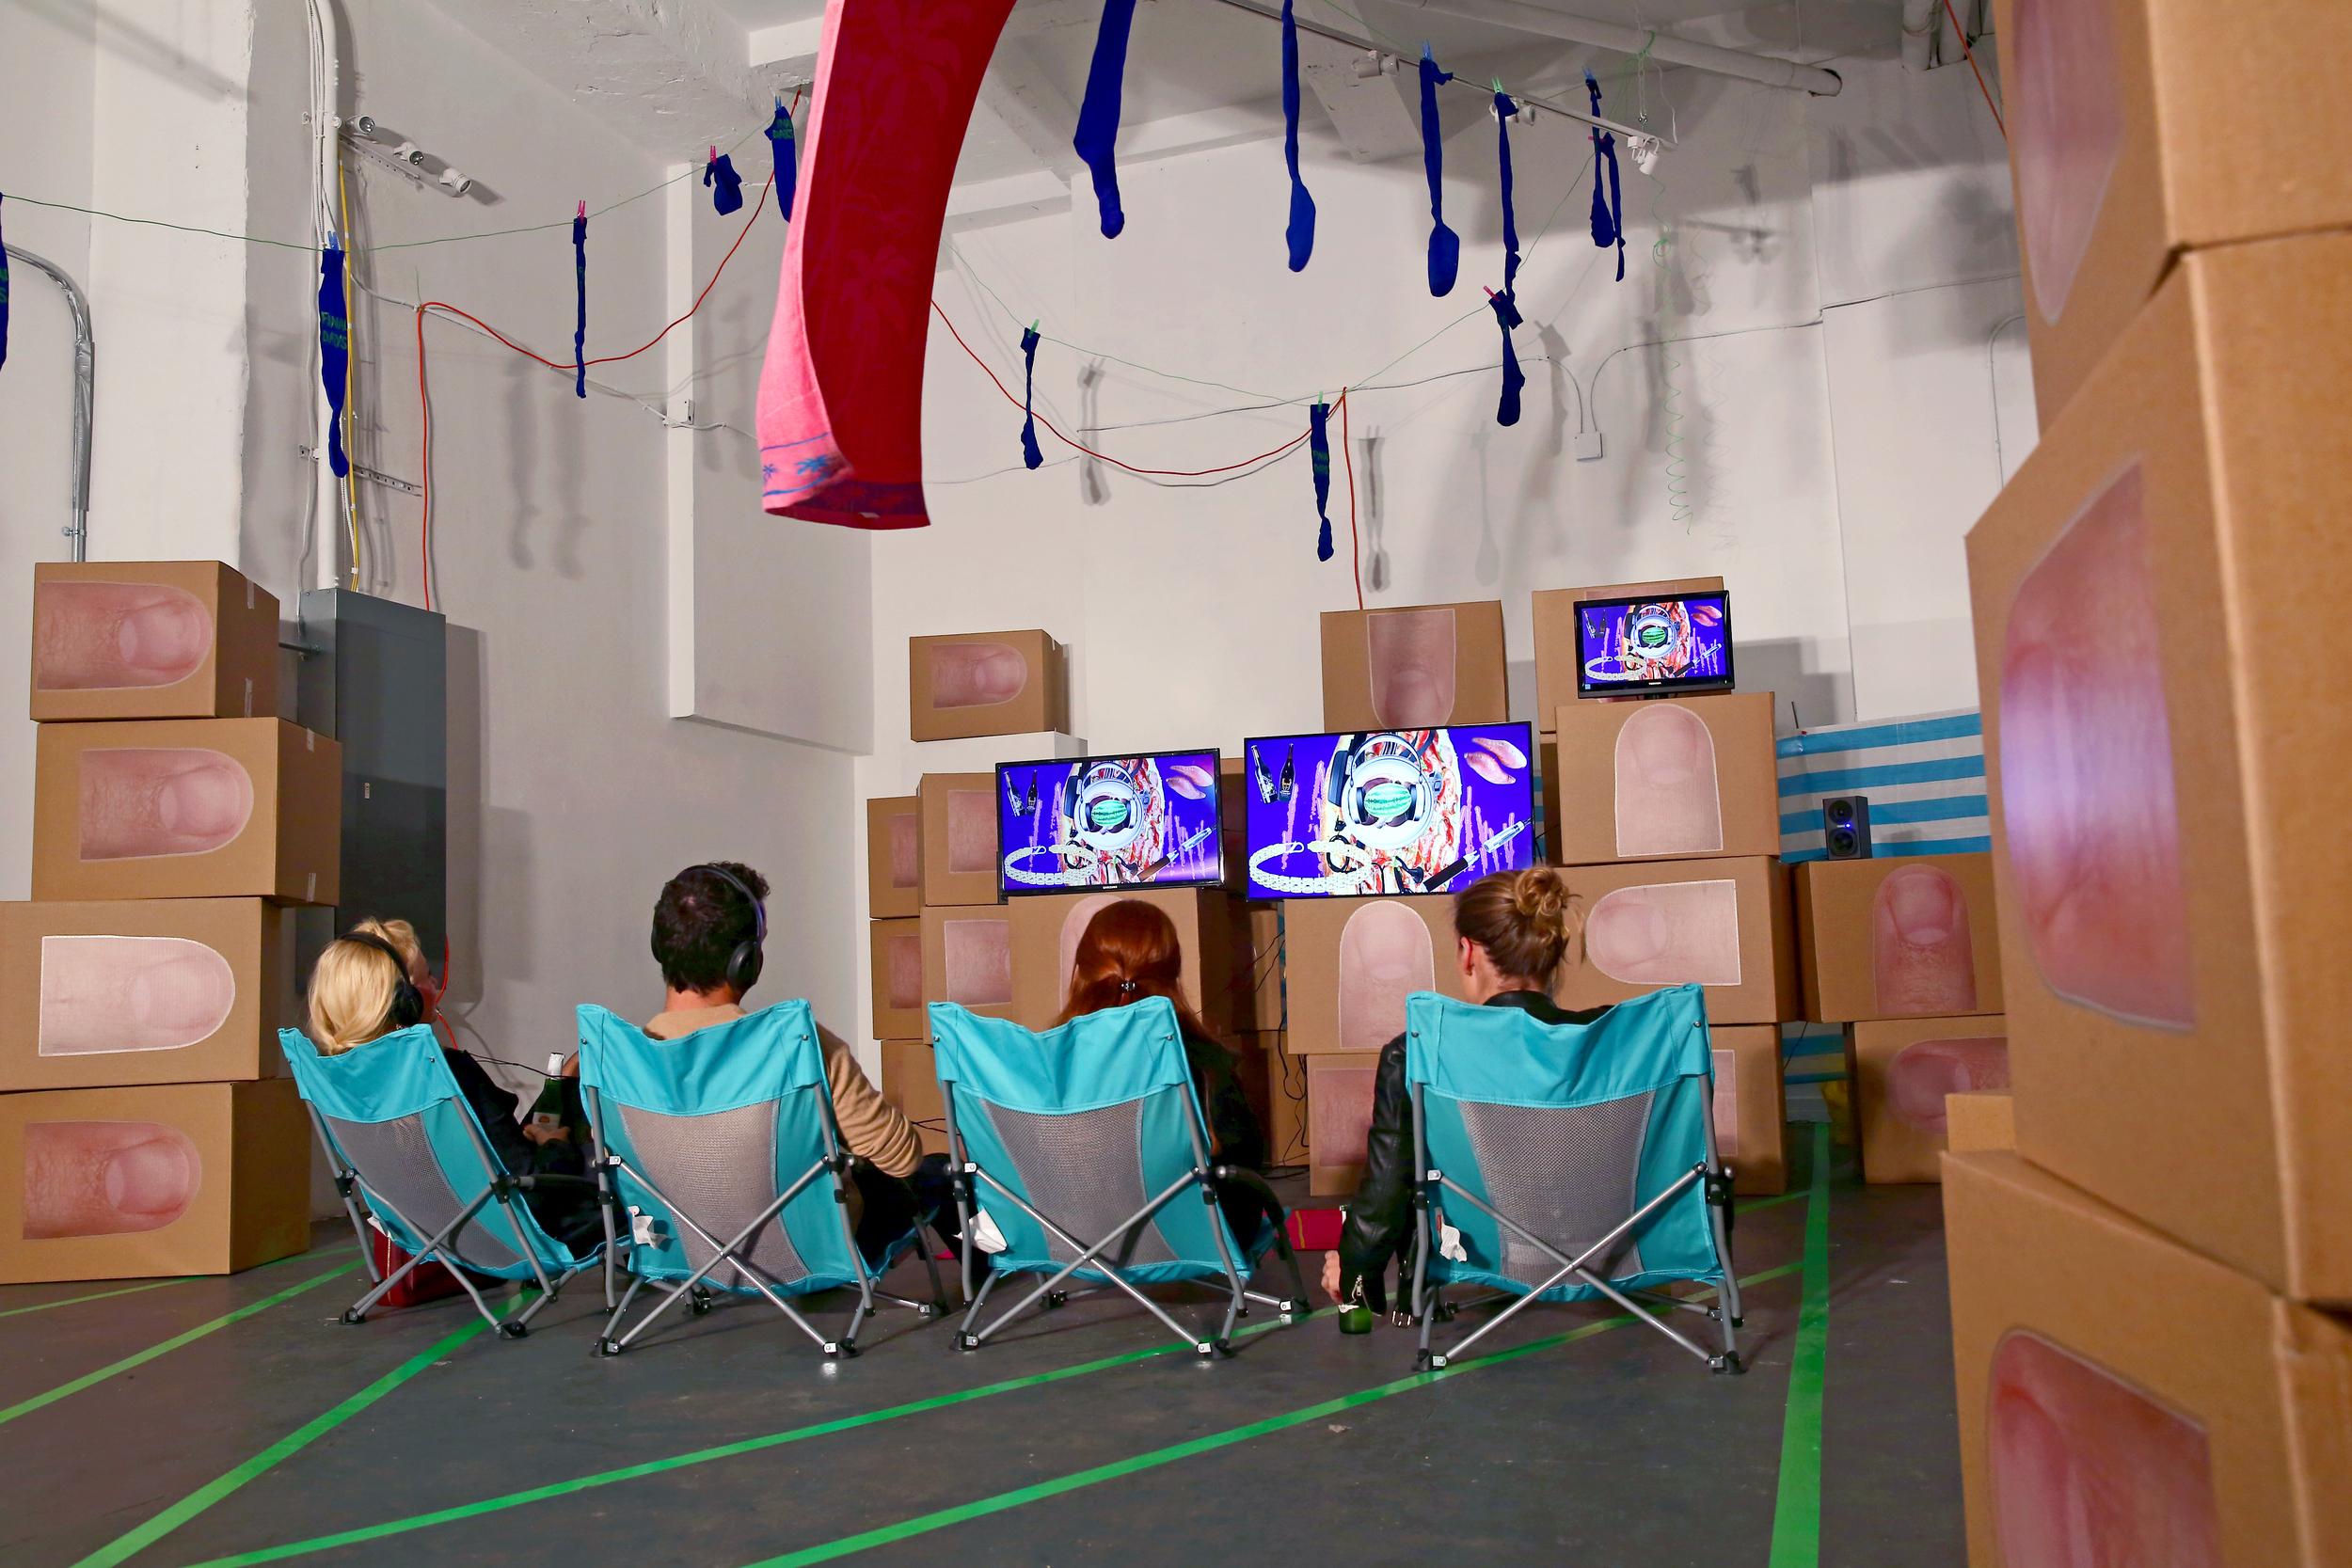 Heather Phillipson, Final Days, A Performa Project, 2015. Photo by Paula Court, courtesy of Performa.